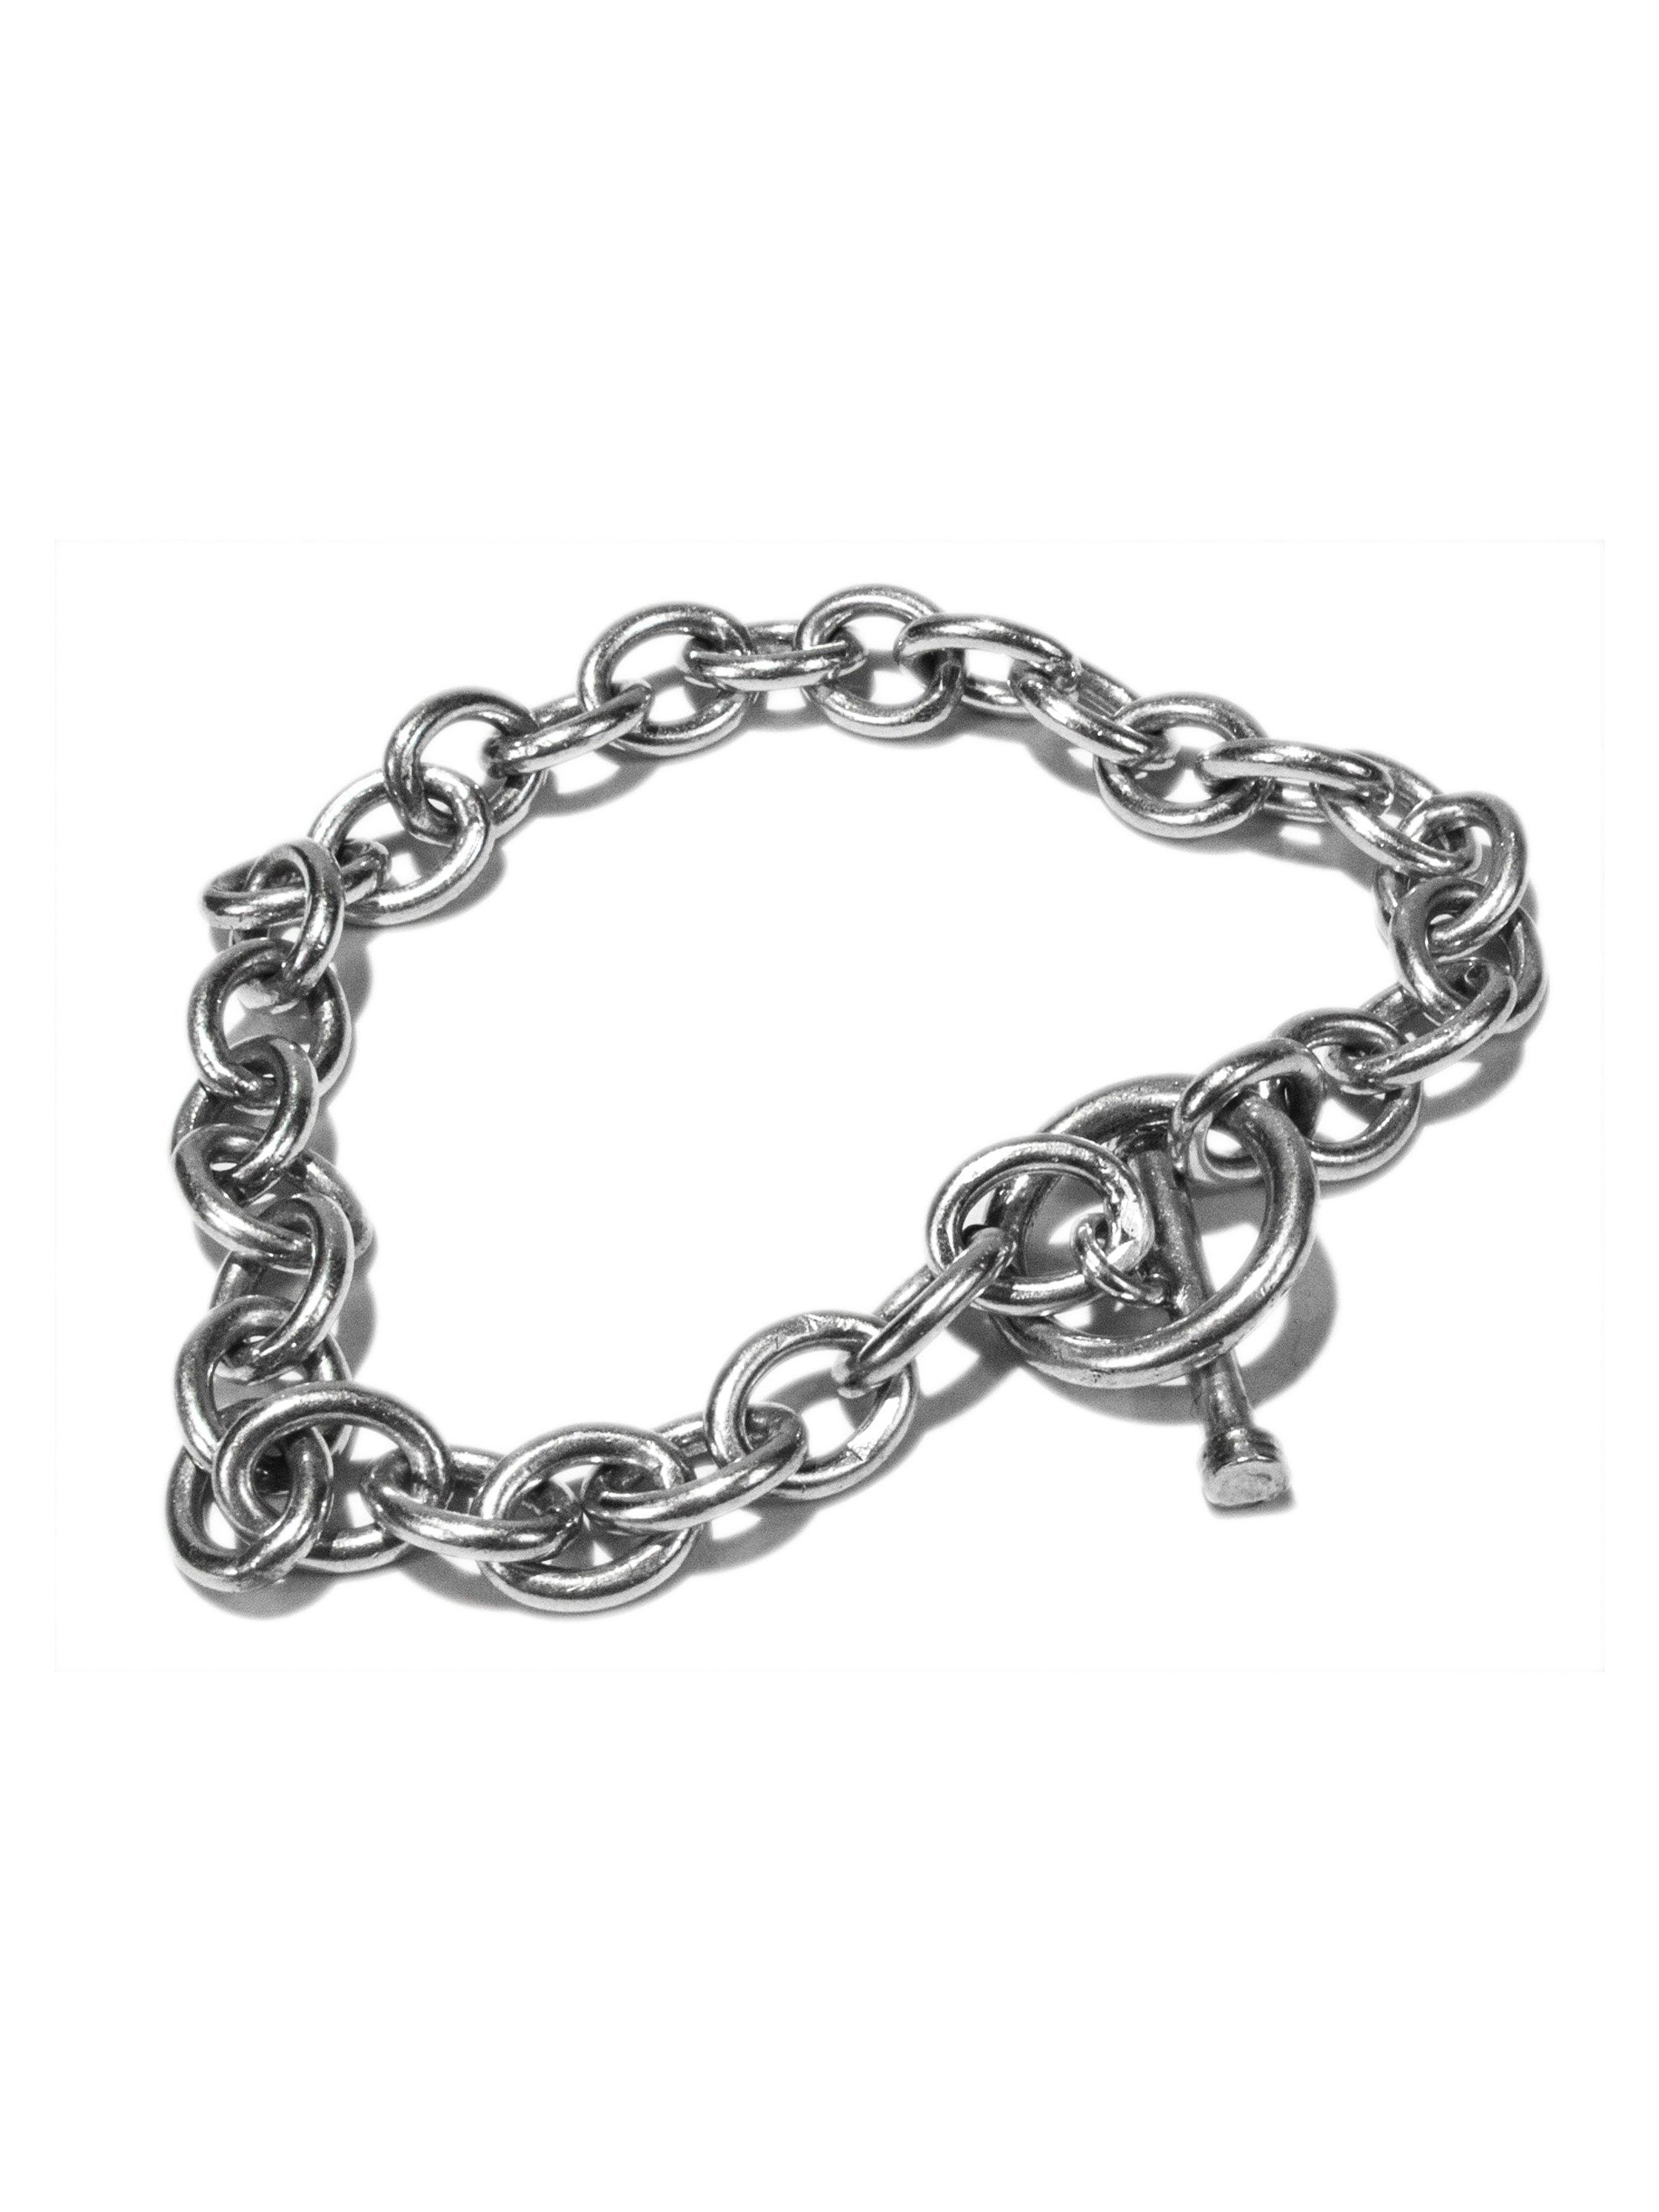 Vintage .925 Sterling Silver Oval Linked Bracelet